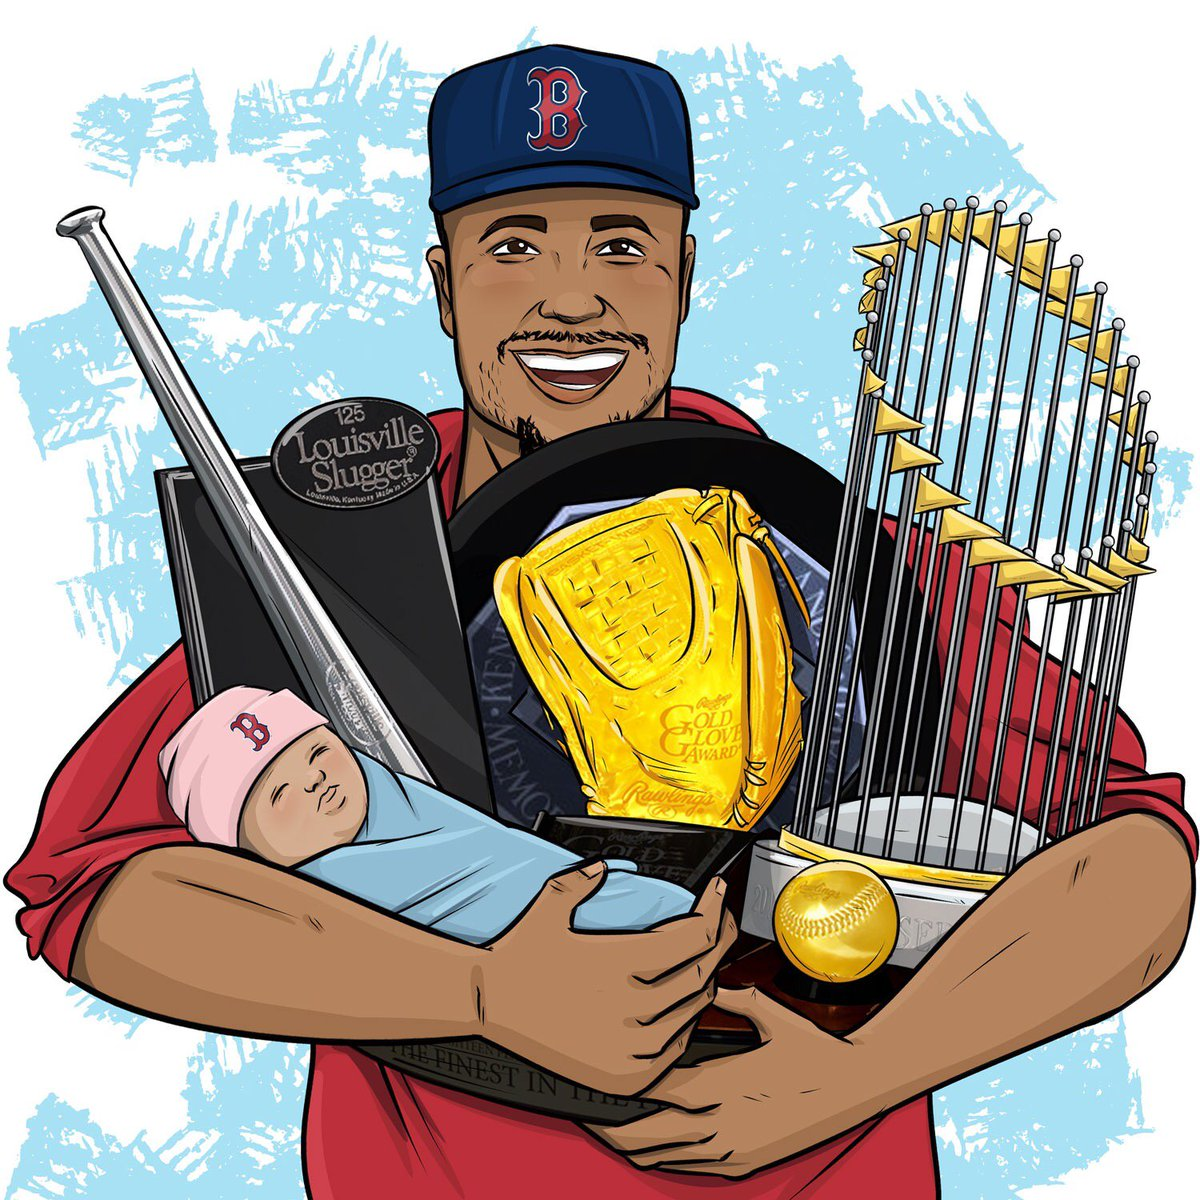 .@mookiebetts has his hands full this year. 😅